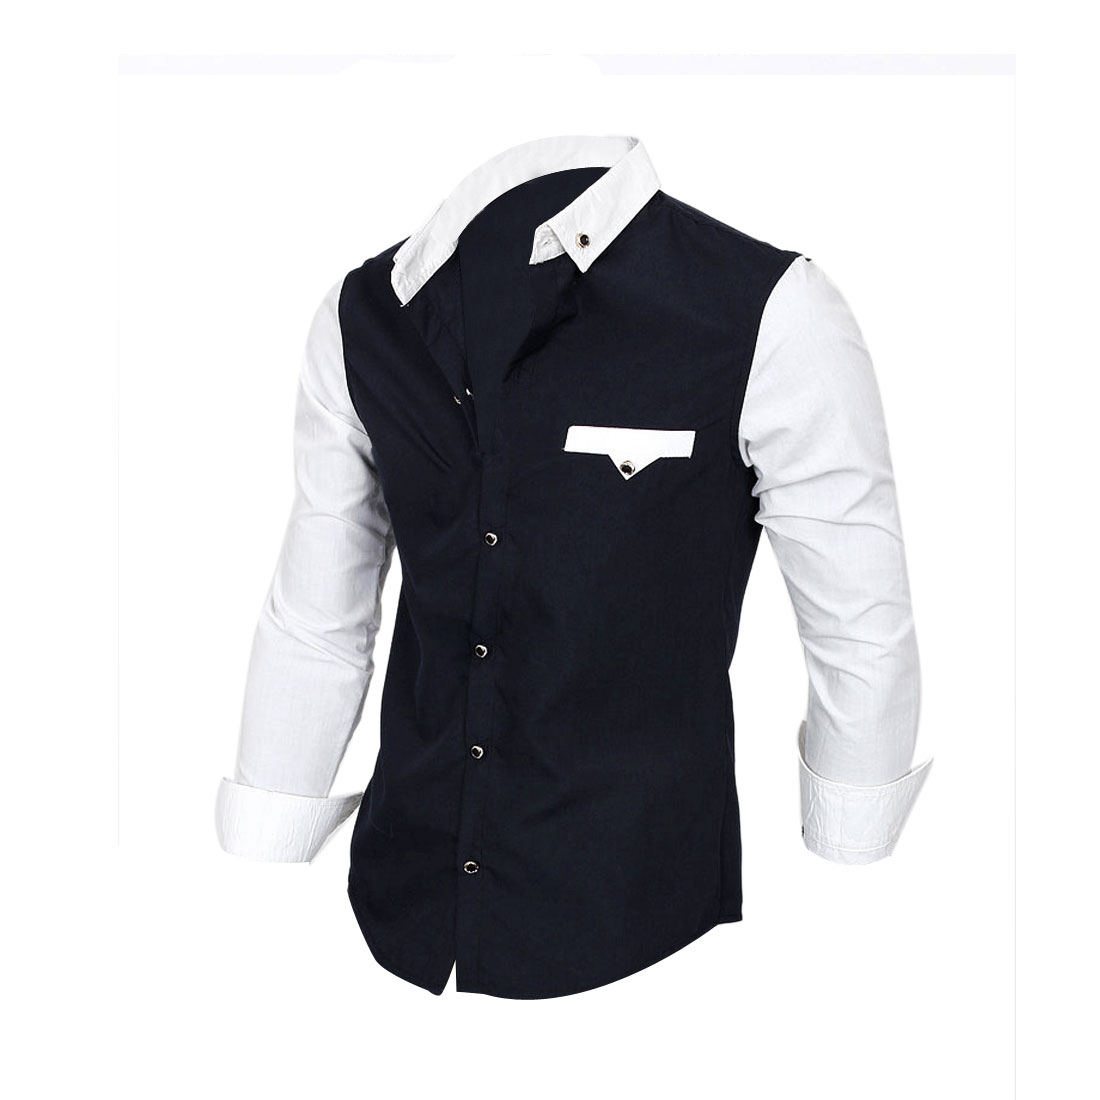 Single-Breasted Front Dark Blue White Slim Fit Casual Shirt for Man S